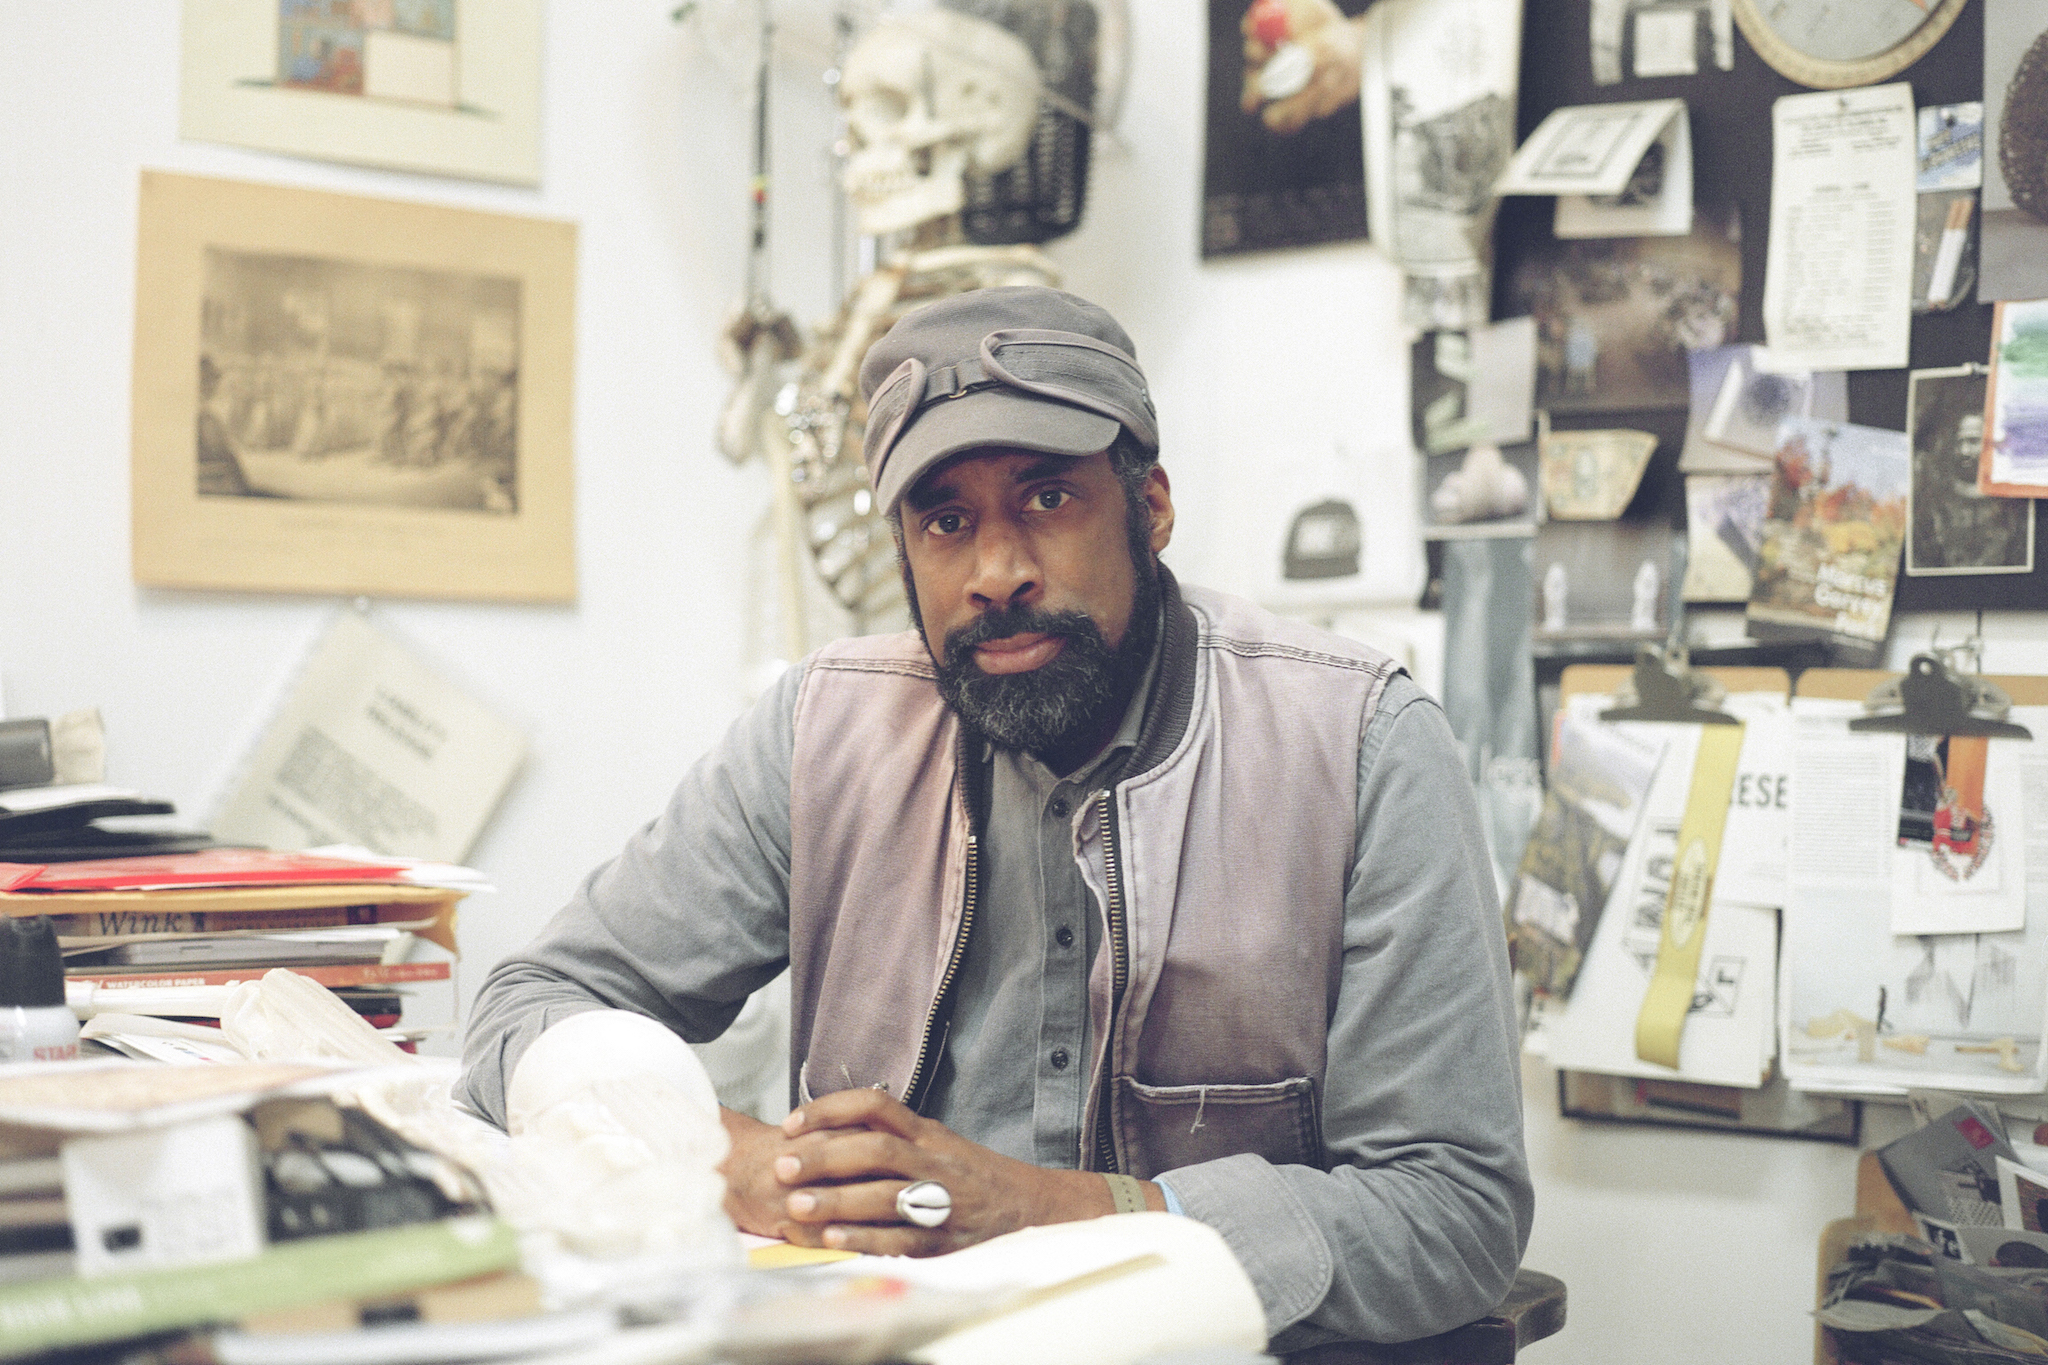 Nari Ward on folk art, found objects and creating havoc with his work